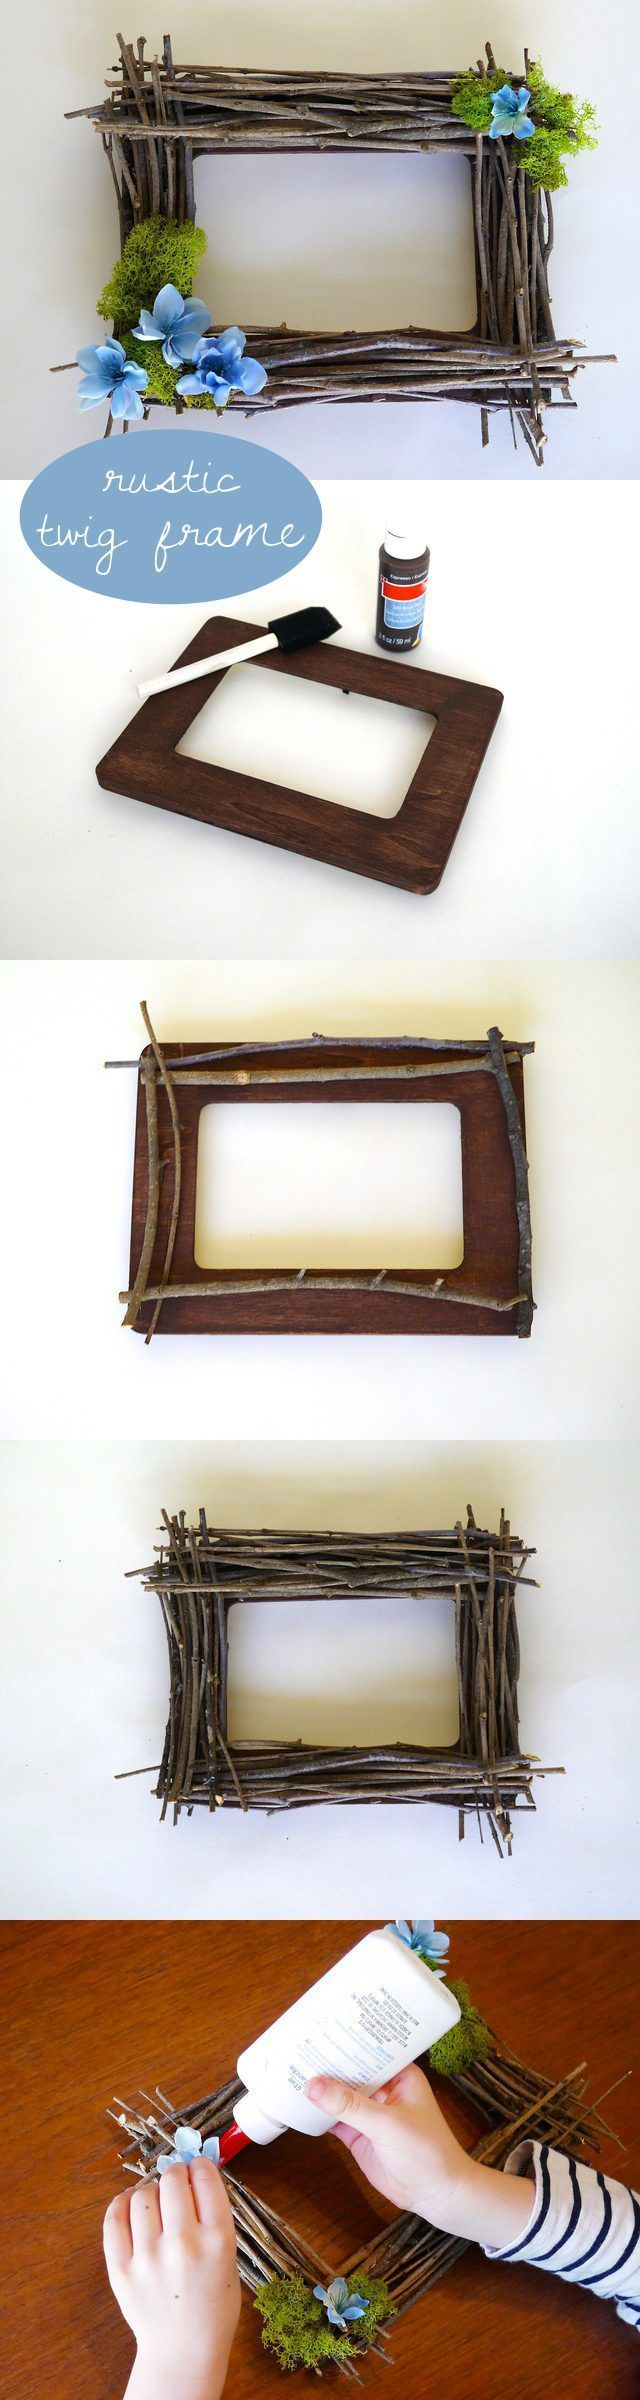 A great way to celebrate spring! This rustic twig frame is a great afternoon crafts project for the kids and is really cheap.  They are twigs, people! It's time for some spring in our homes... http://www.ehow.com/info_12340437_diy-rustic-twig-frame.html?utm_source=pinterest.com&utm_medium=referral&utm_content=inline&utm_campaign=fanpag